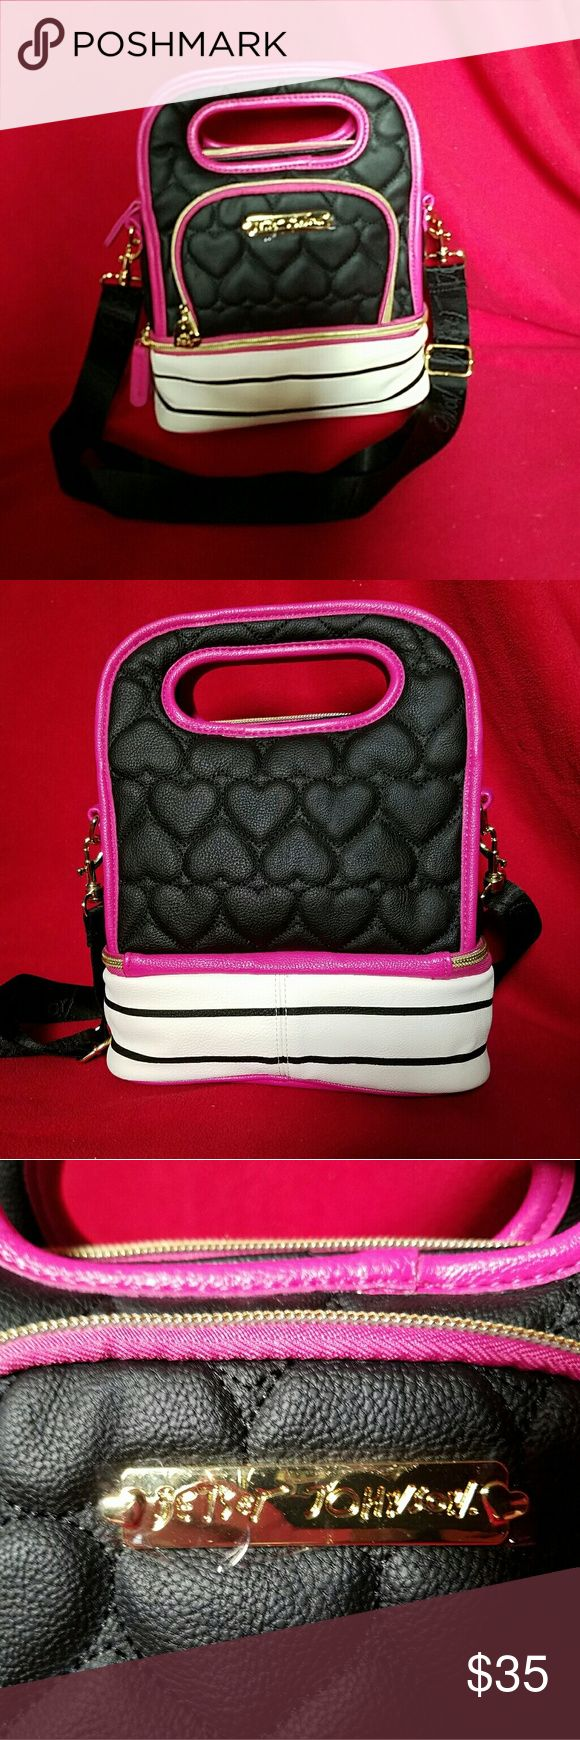 Betsey Johnson Lunch Box NWOT. Still has the plastic over the name plate.Two compartment lunch box. Black top half, white with black stripped bottom, all outlined in pink. Betsey Johnson Bags